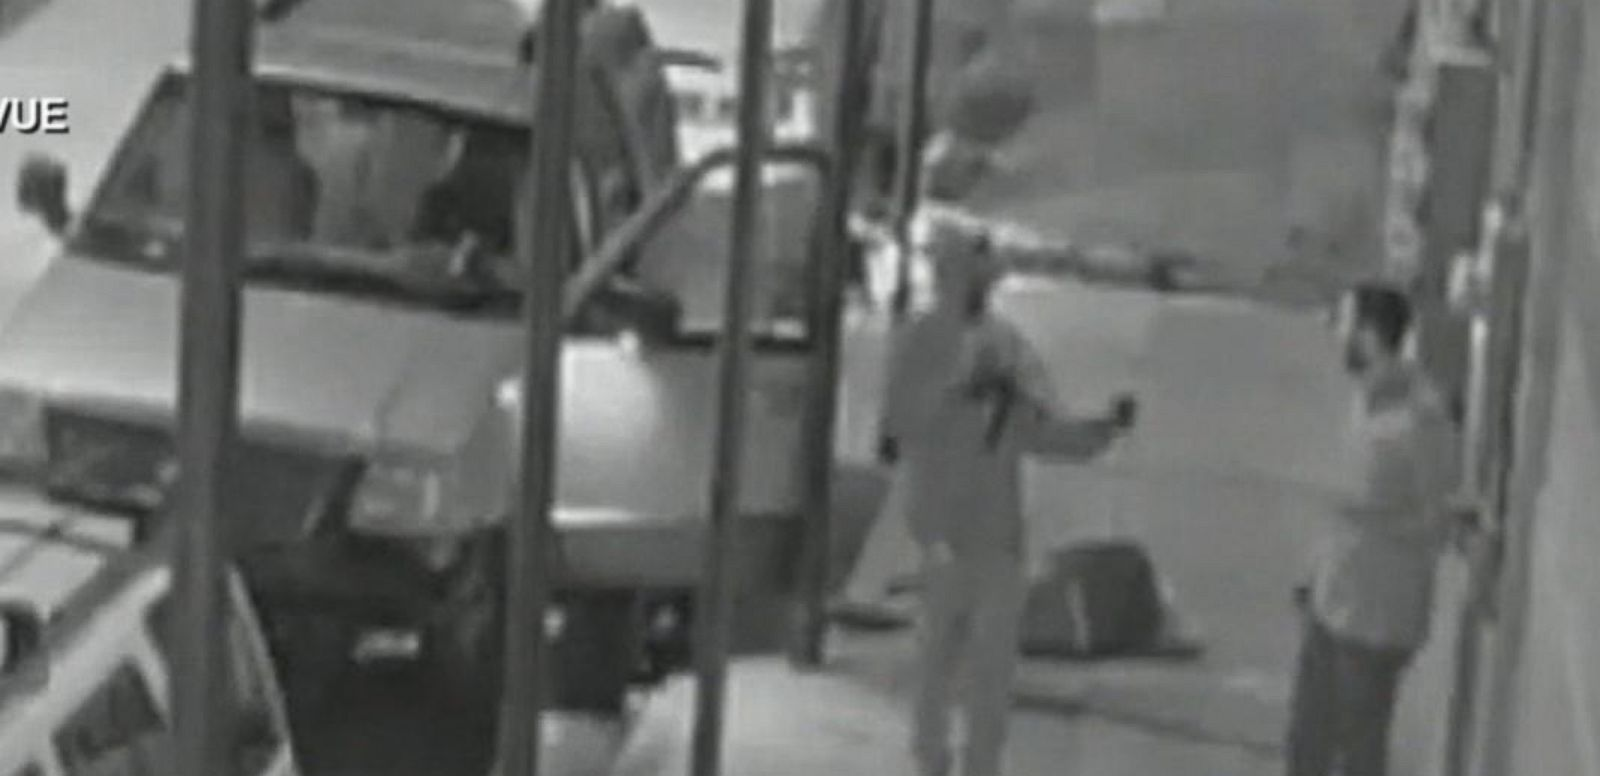 VIDEO: New Surveillance Video Shows Moments Leading Up to Shooting of Tulane Med Student